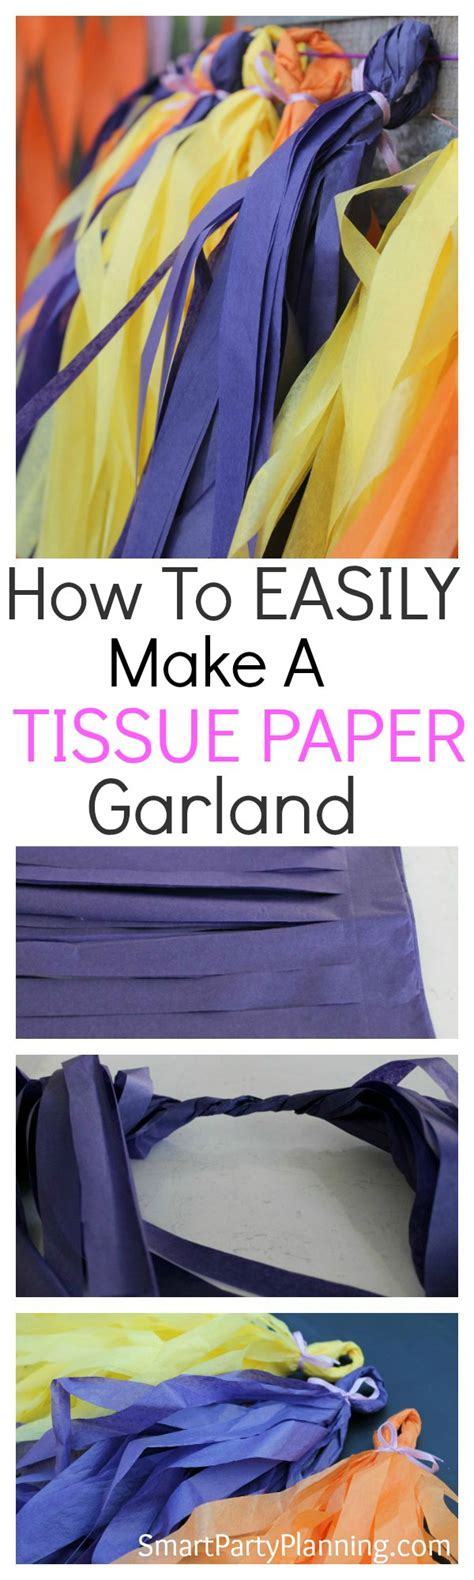 how to make a tissue paper garland the easy way